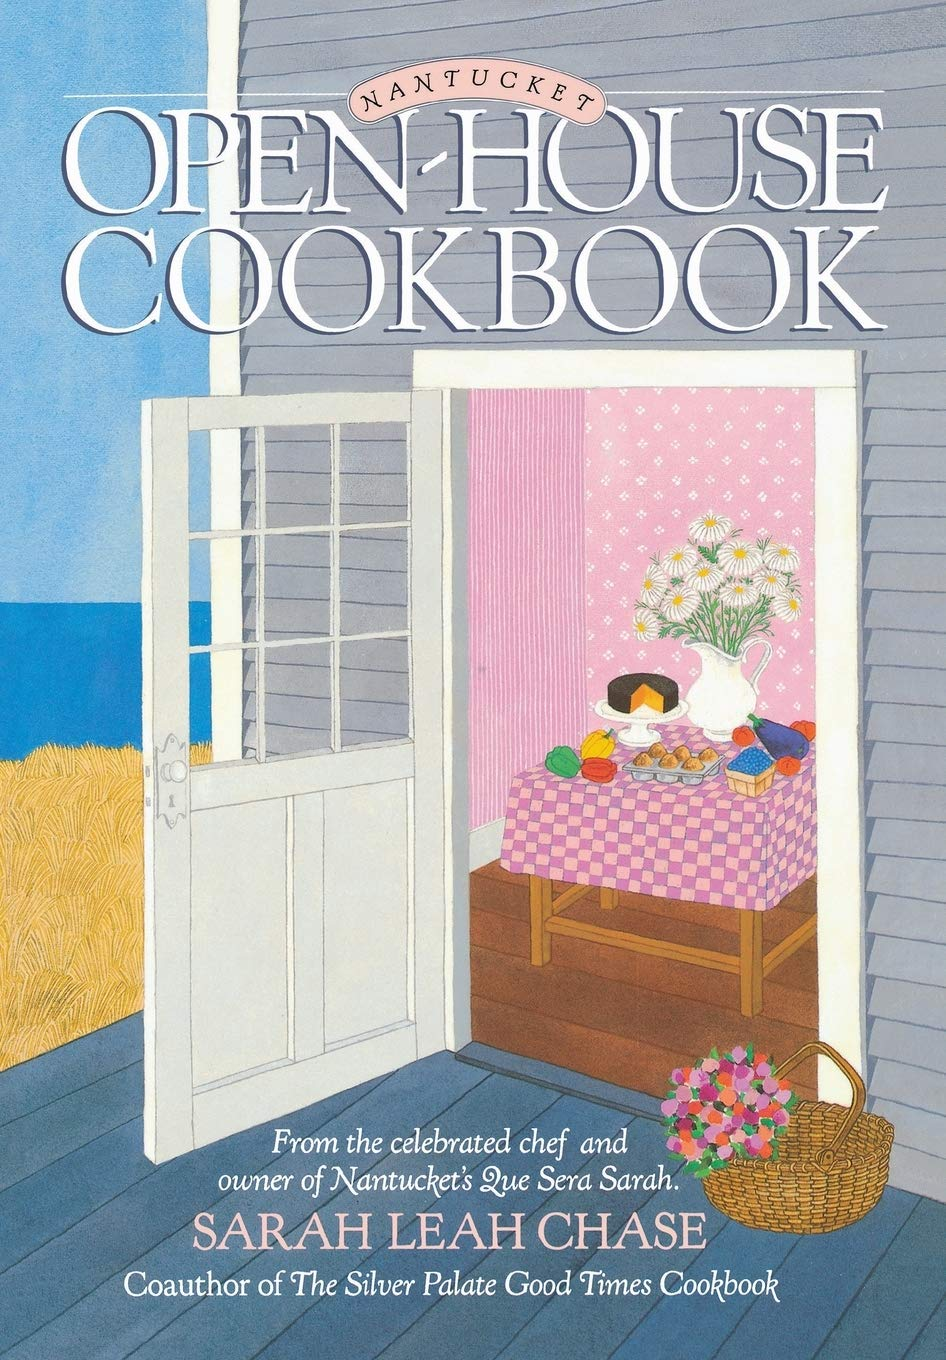 Nantucket Open House Cookbook